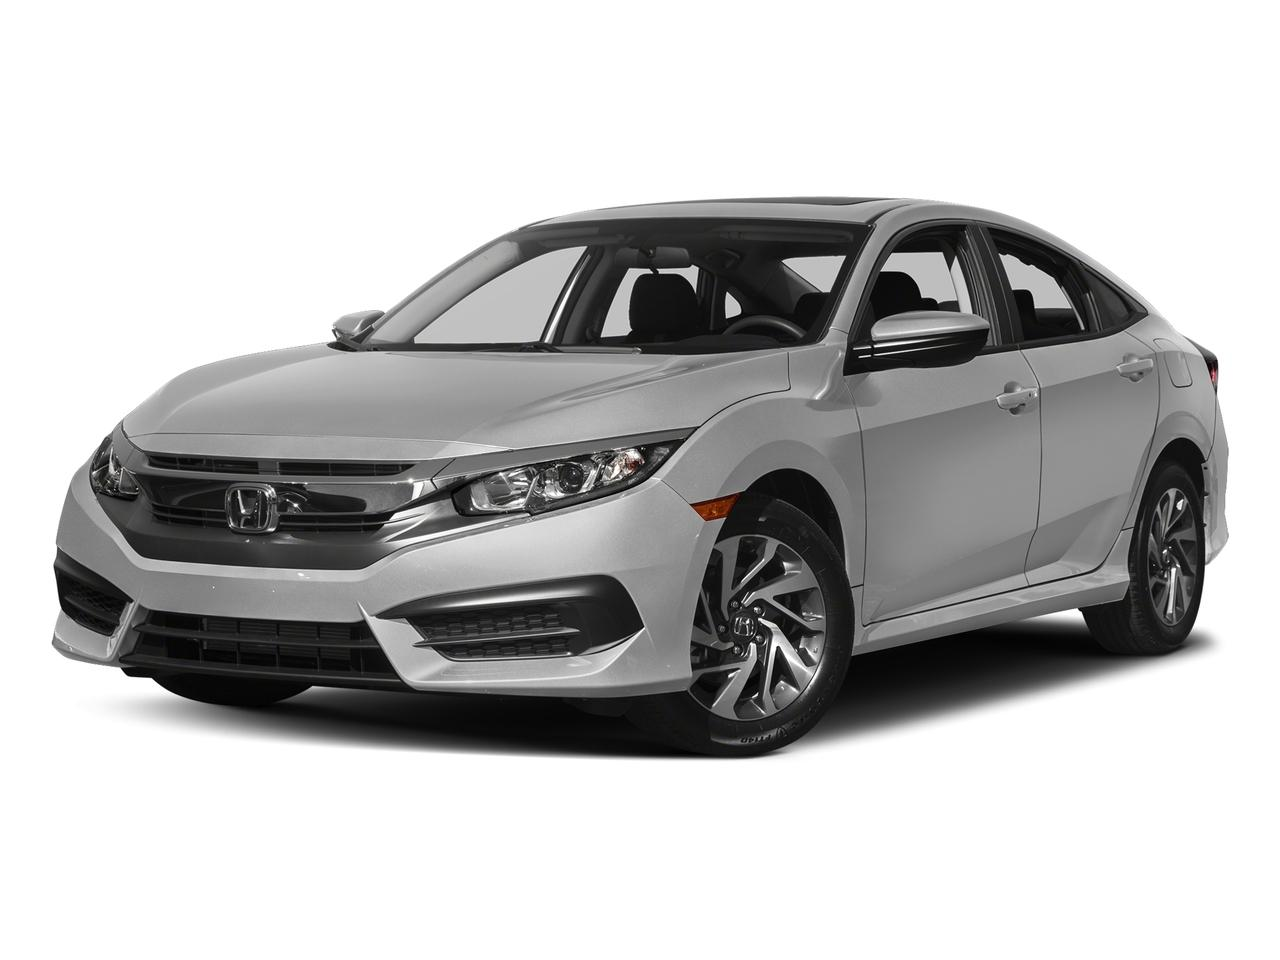 2017 Honda Civic Sedan Vehicle Photo in Glenwood Springs, CO 81601